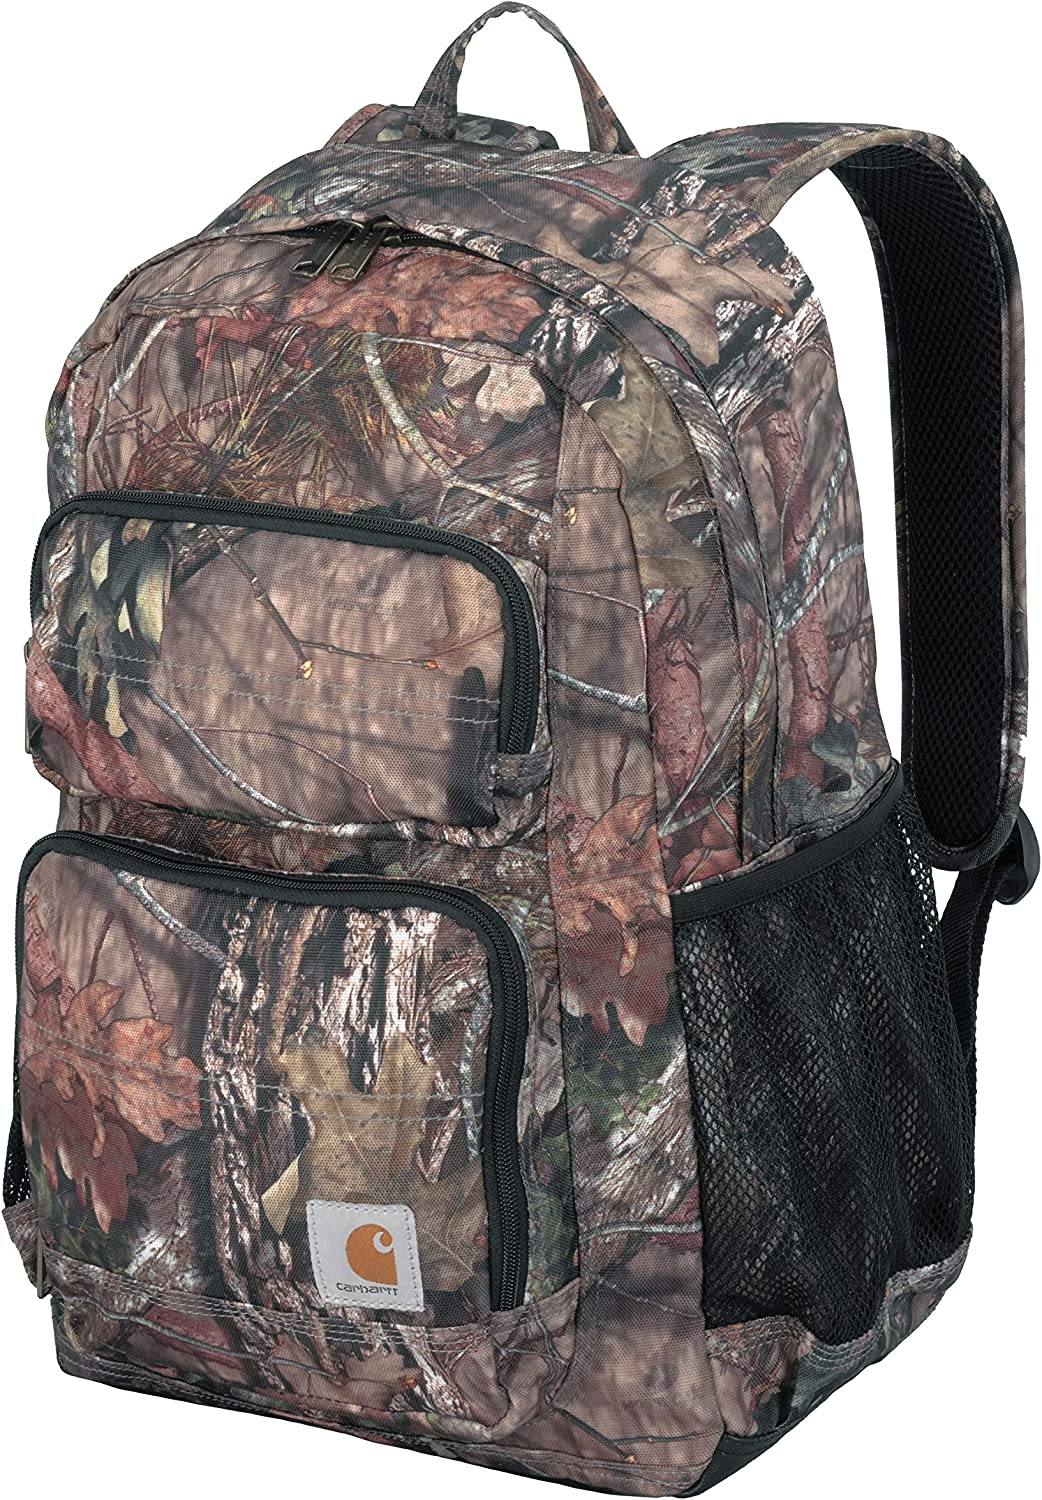 Carhartt Standard Work Backpack, Mossy Oak, One Size